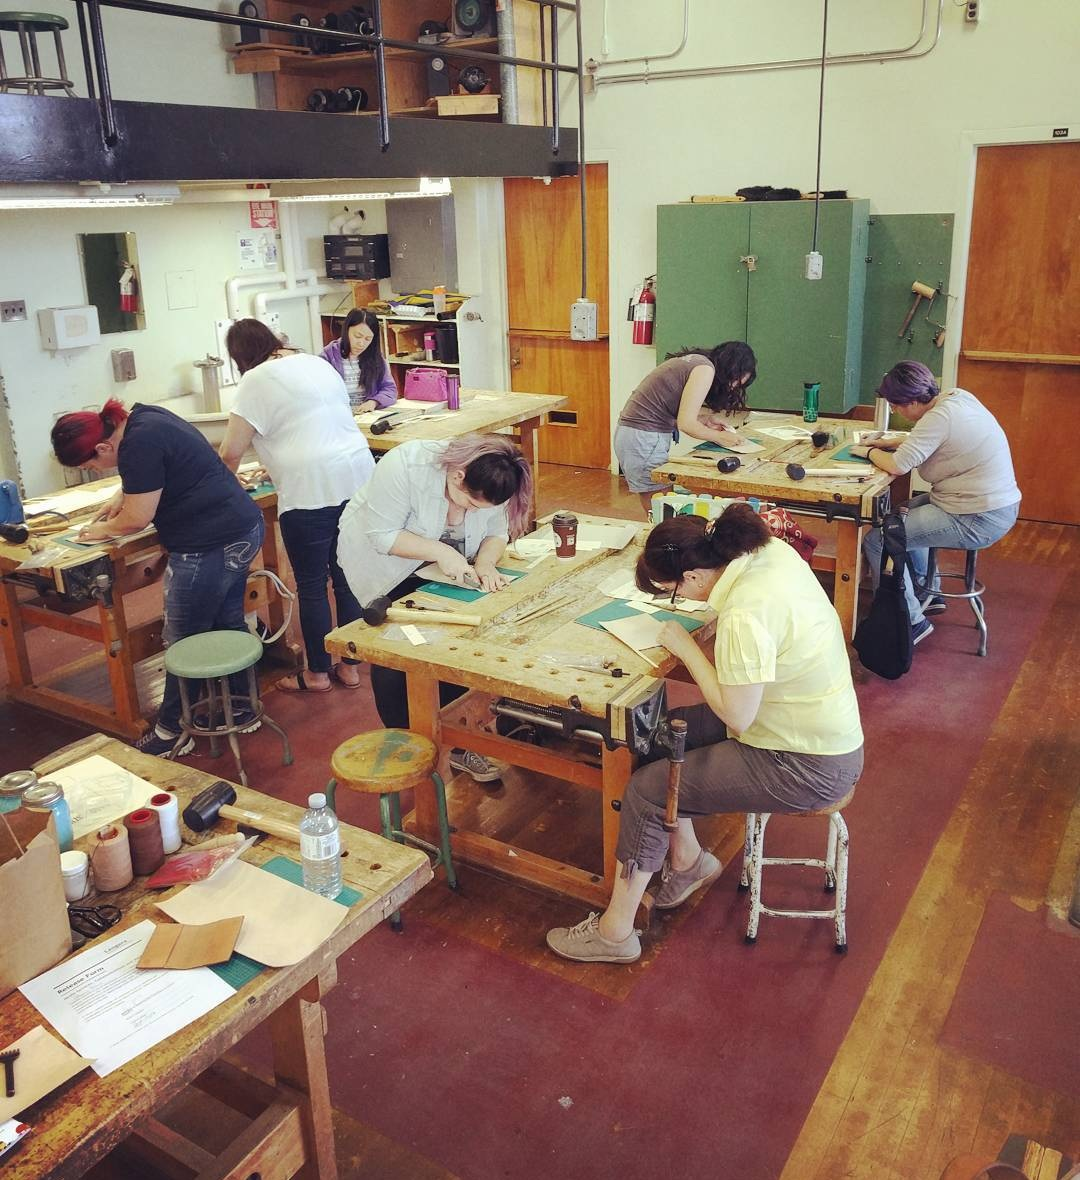 Do you teach classes? - Boy howdy, do we. Founder Steven teaches private leatherworking classes where you can take home your own handmade bags, wallets, belts and other leather goodies.Learn more ➝